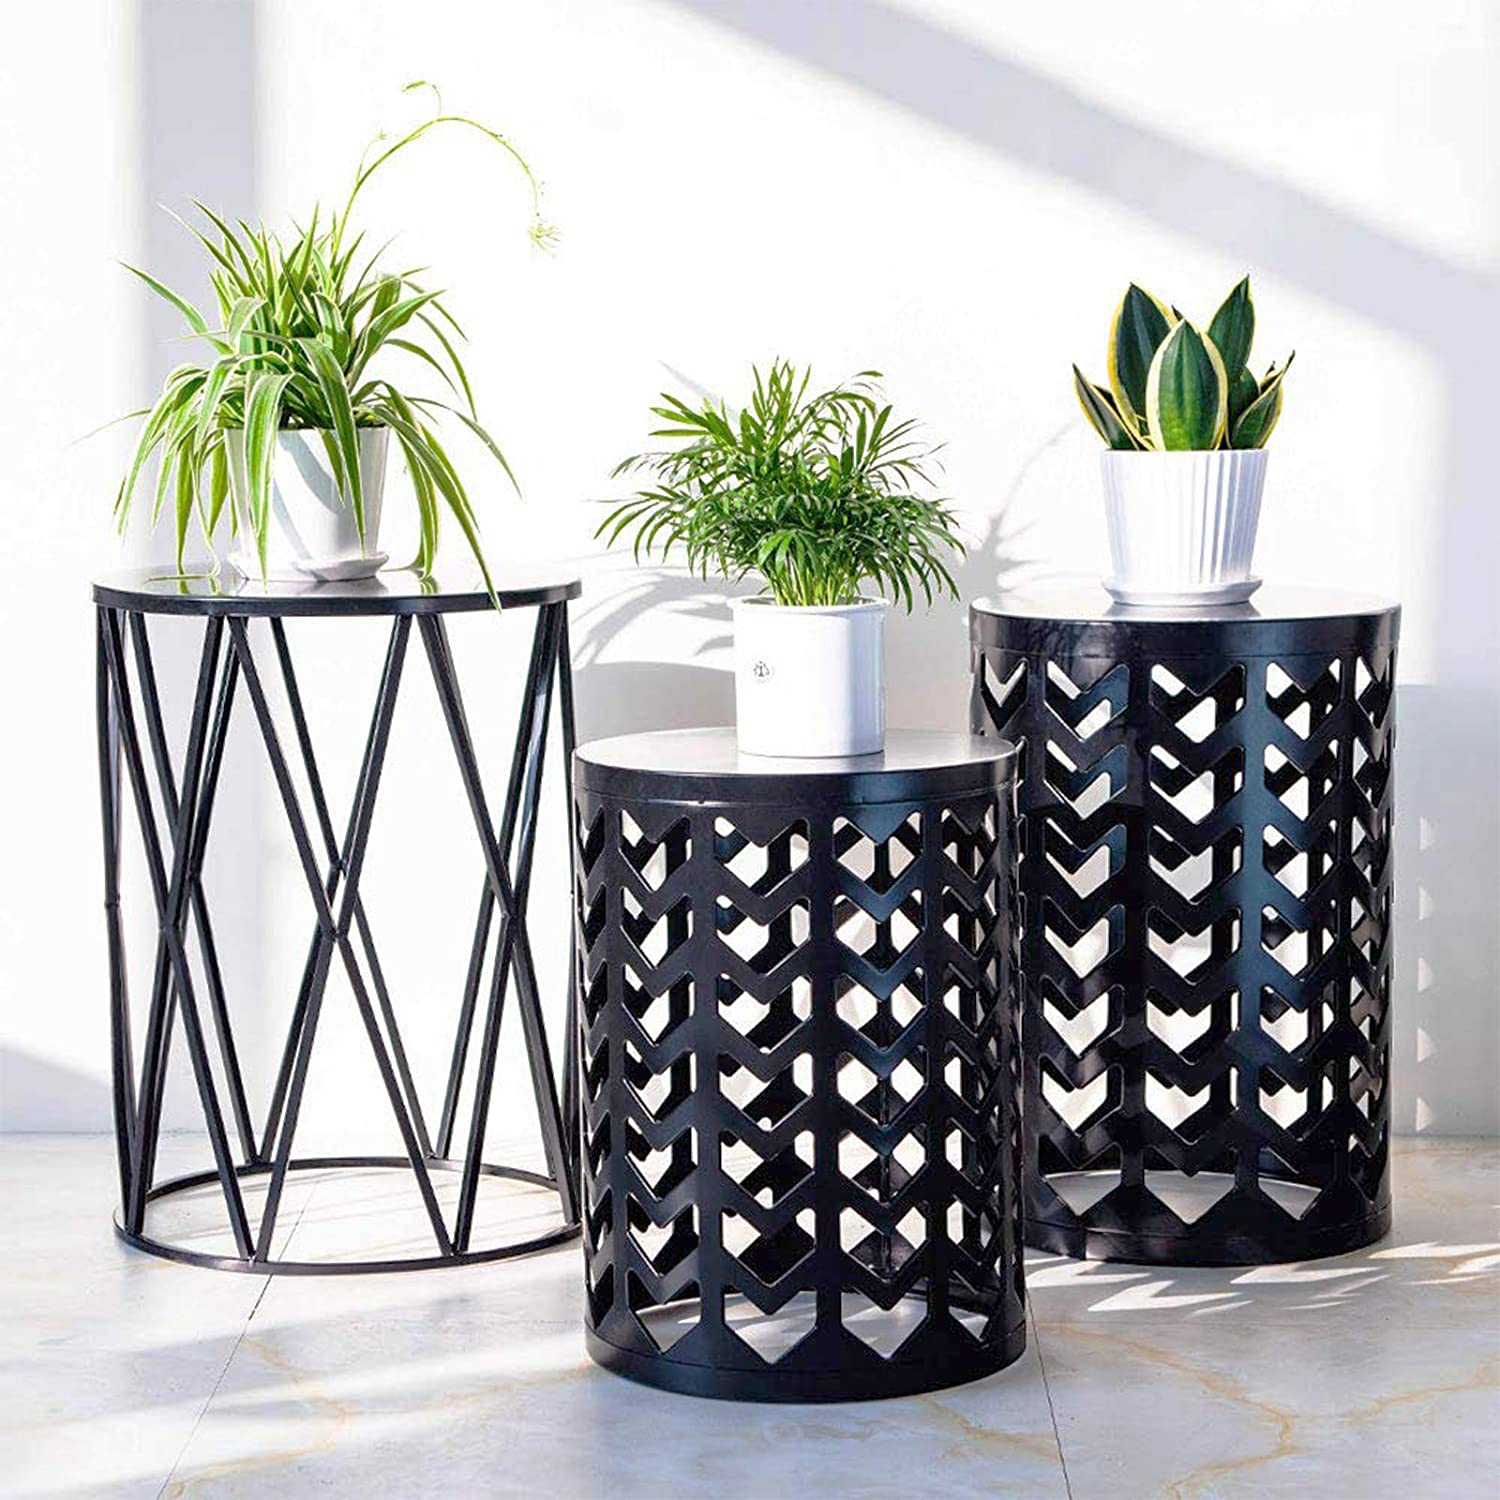 Set of 3 Nesting Metal Round Coffee Table, Side Table End Table for Indoor Outdoor Multifunctional Use,Heavy Duty Metal Plant Stand Garden Stool- Black(Ship from US)